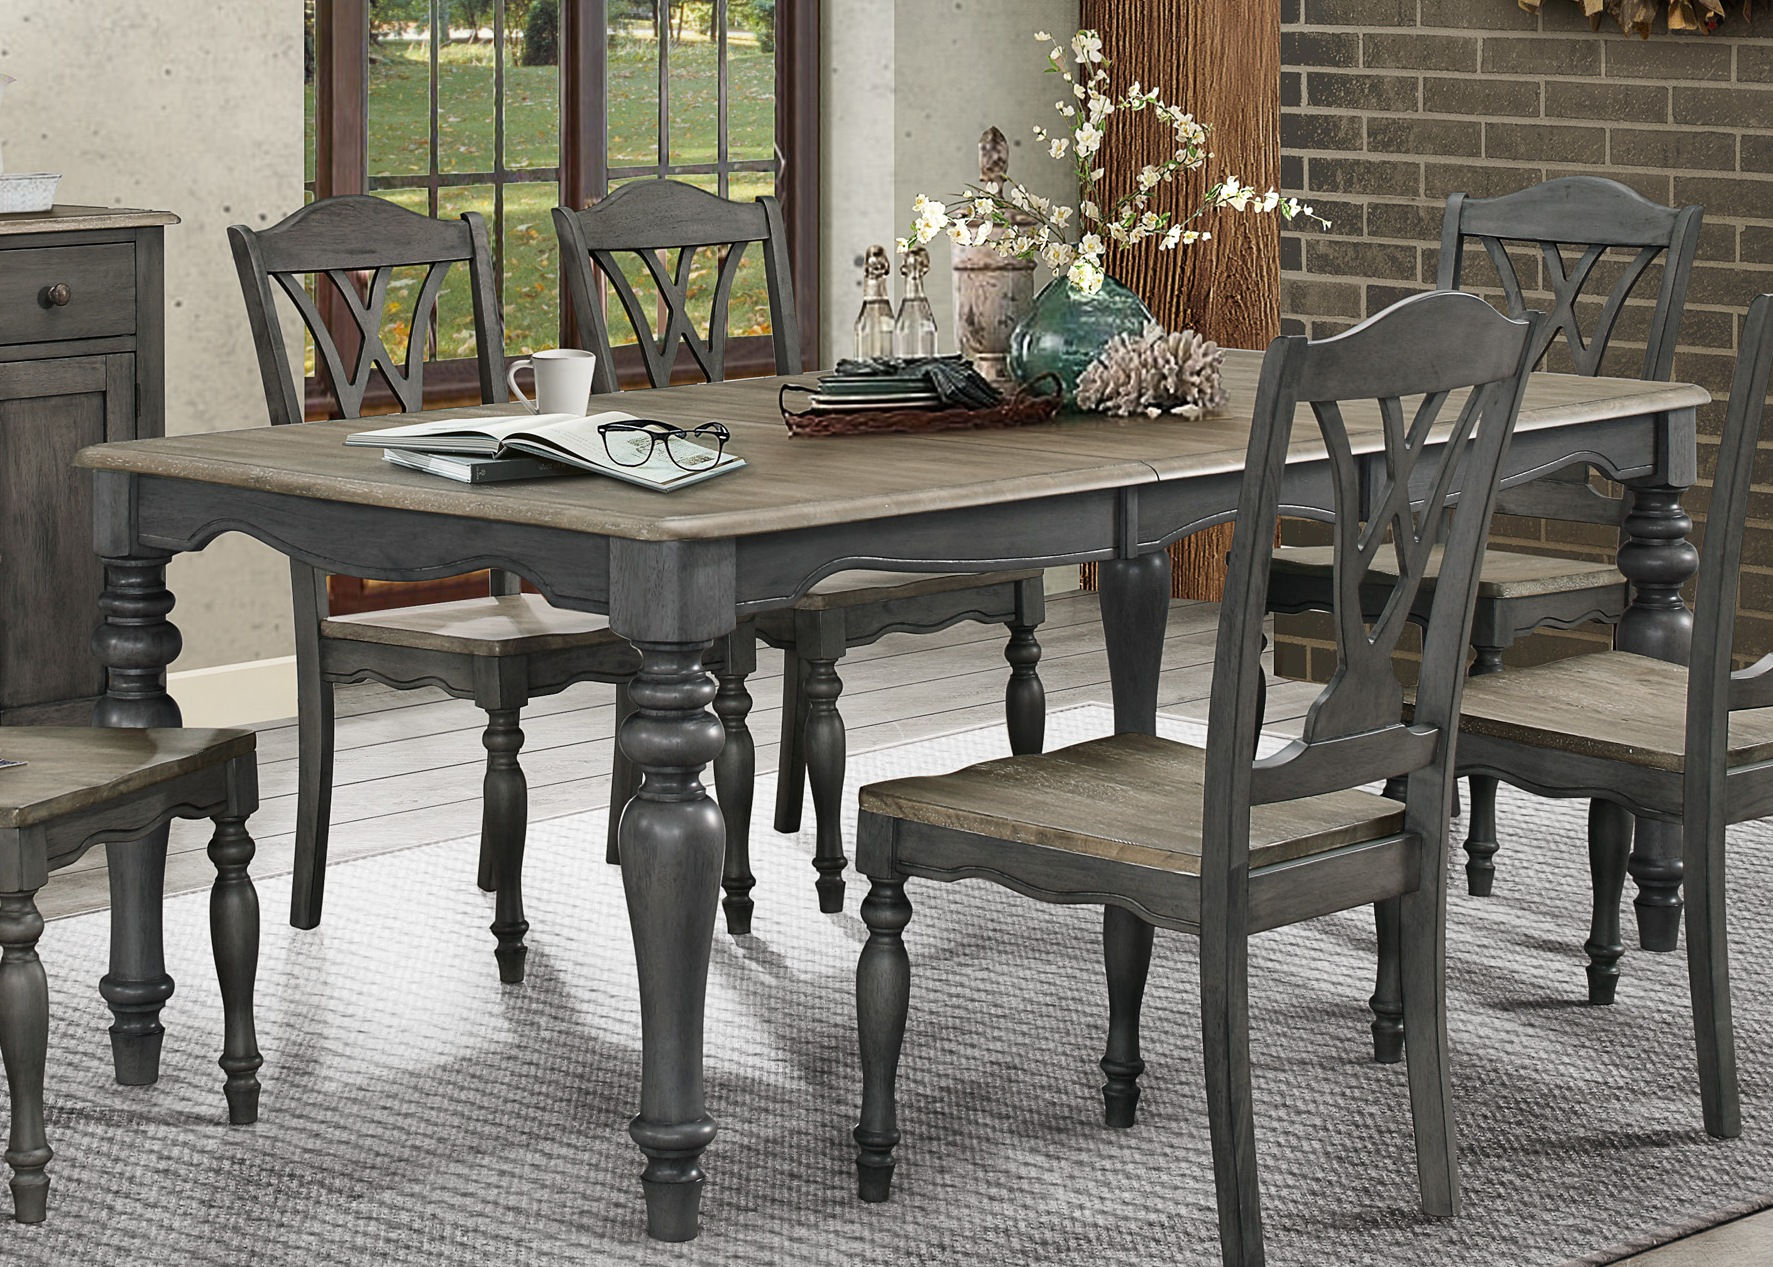 Home Elegance Hyacinth Oakwash Gray 18 Inch Butterfly Leaf Dining Table